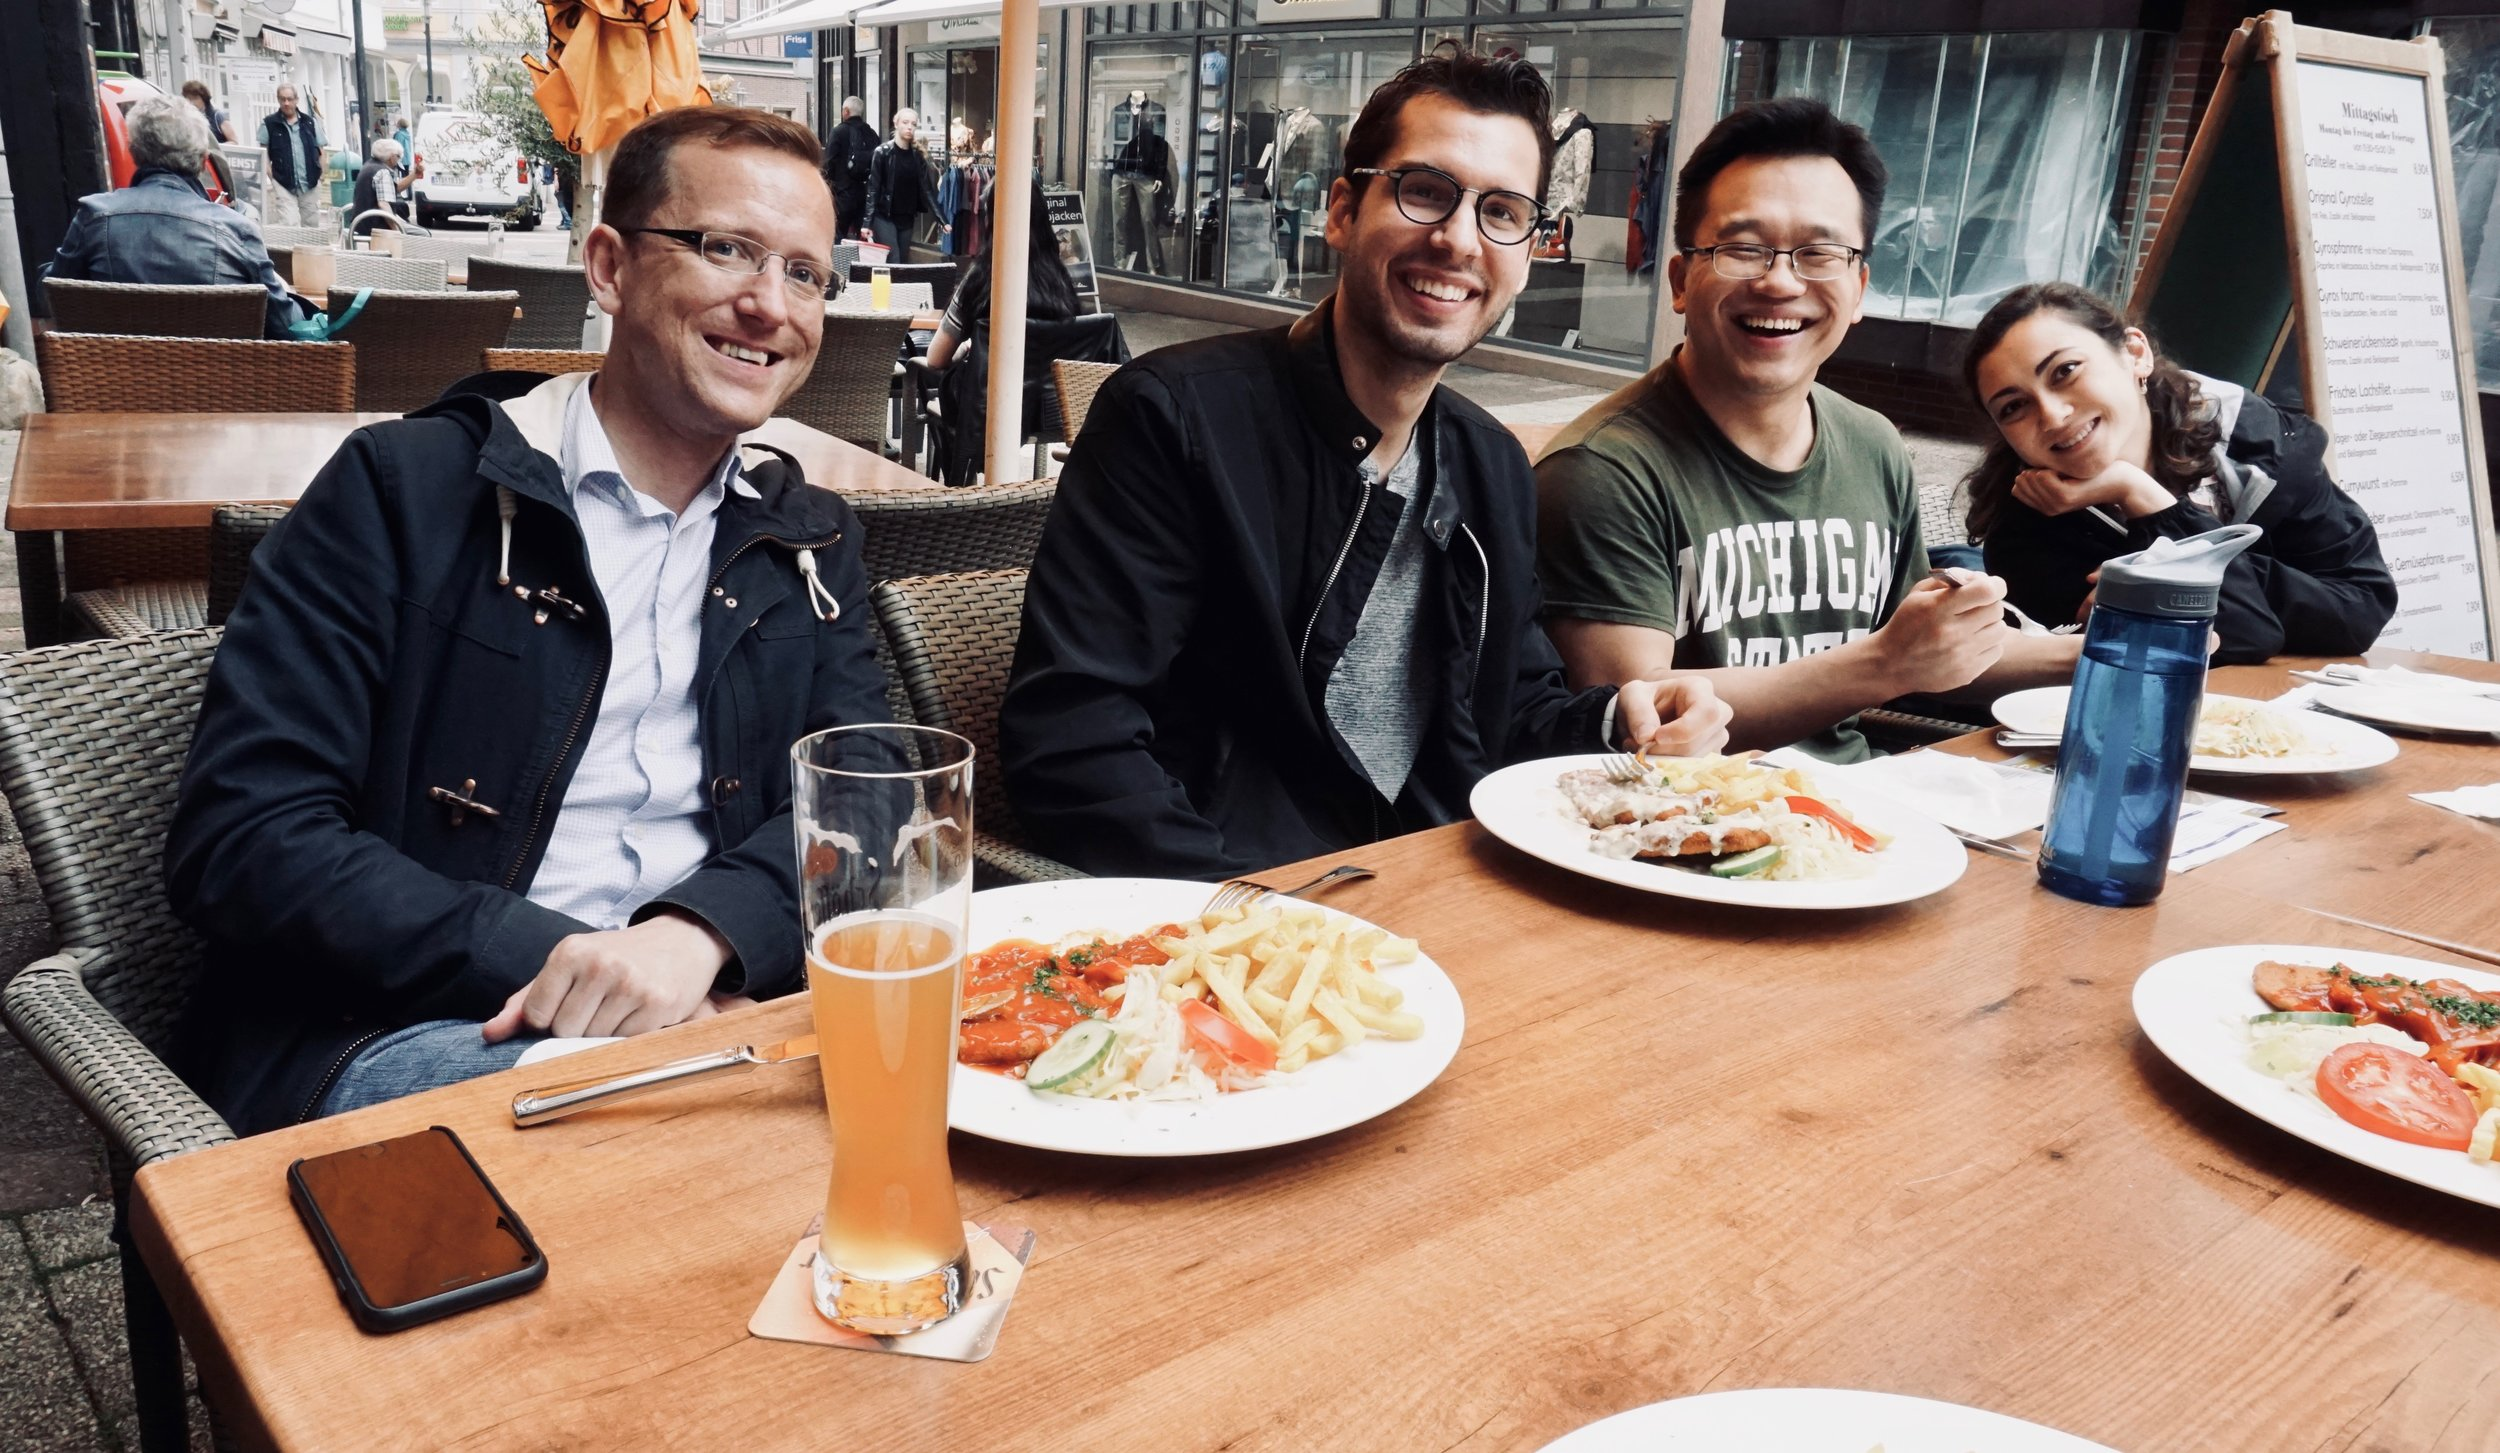 Chris, Nick, Cho, and Meg enjoy lunch in Stade, Germany.